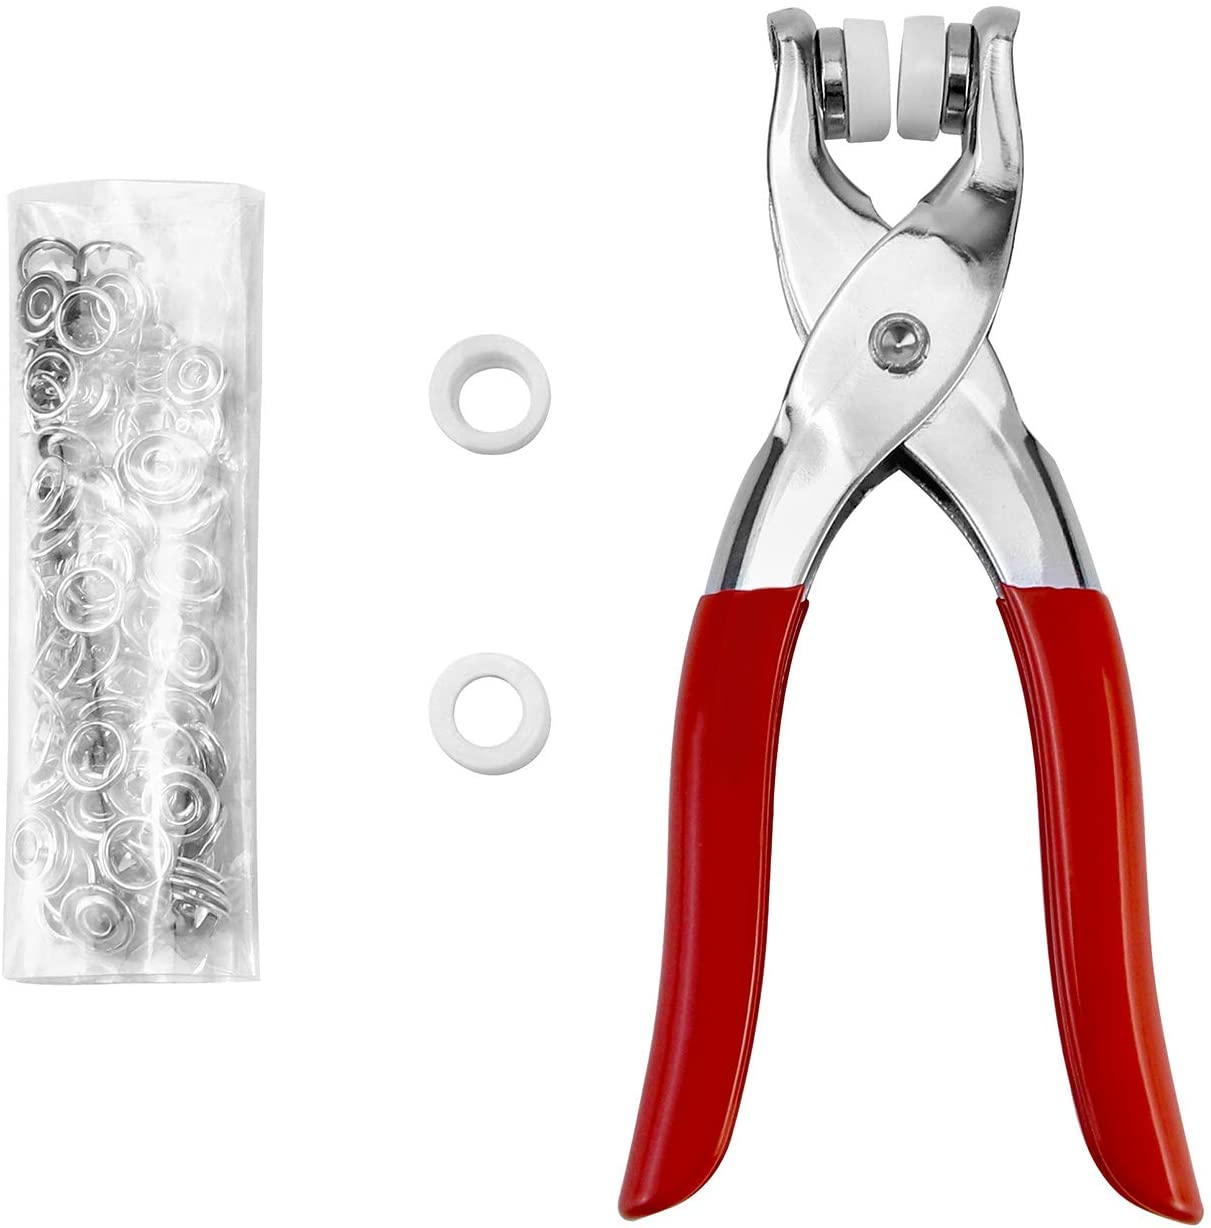 QWORK Snap Fastener Tool with Selling and selling 100 Regular store Pieces complete a Male for 25